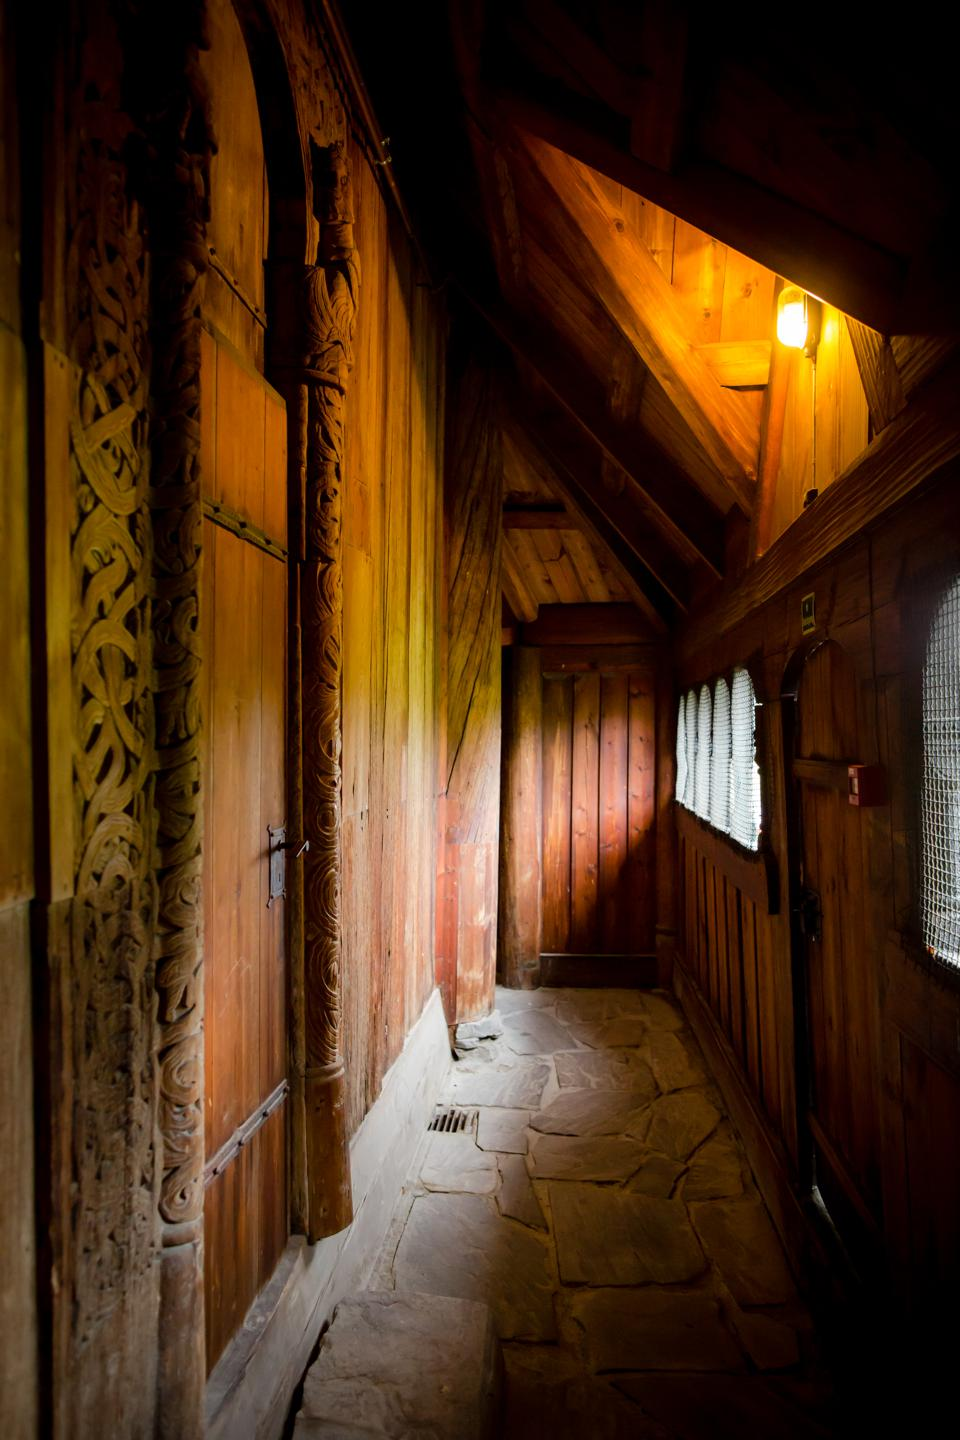 The interior of Heddal Stave Church in Notodden, Norway.